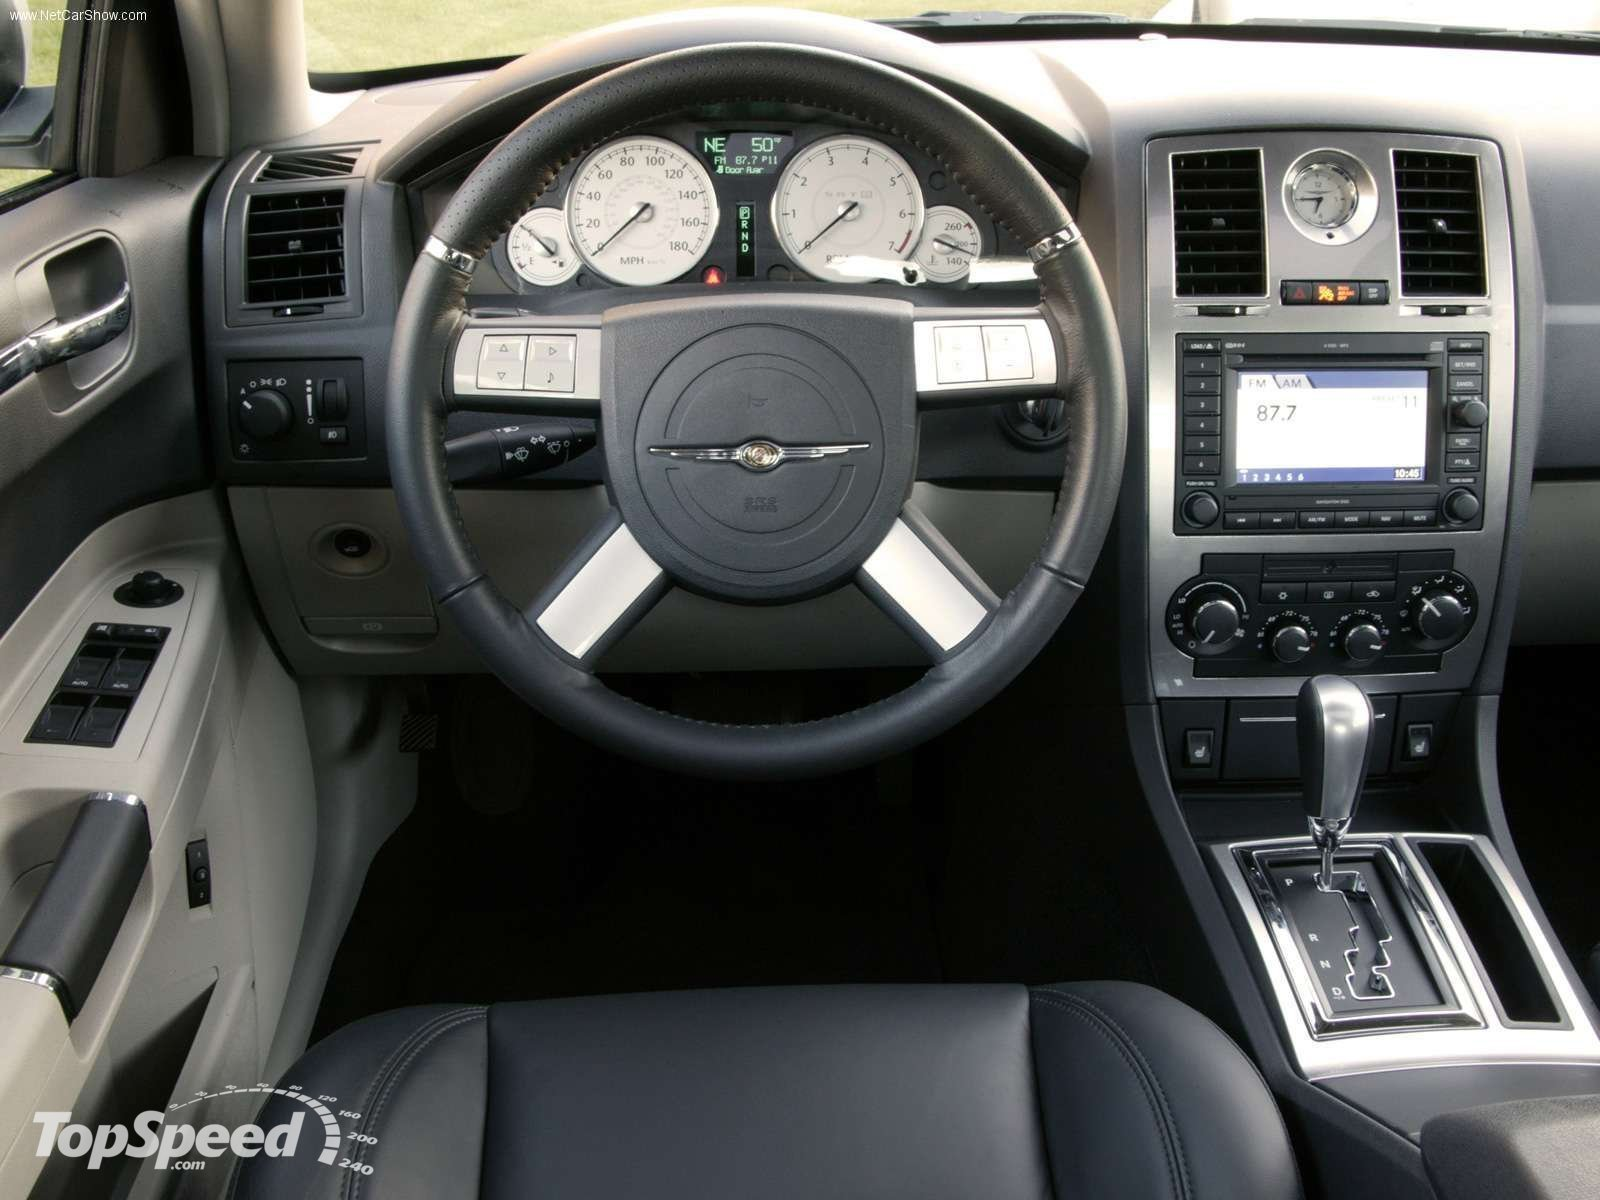 2005 Chrysler 300C SRT 8 RA-Interior View